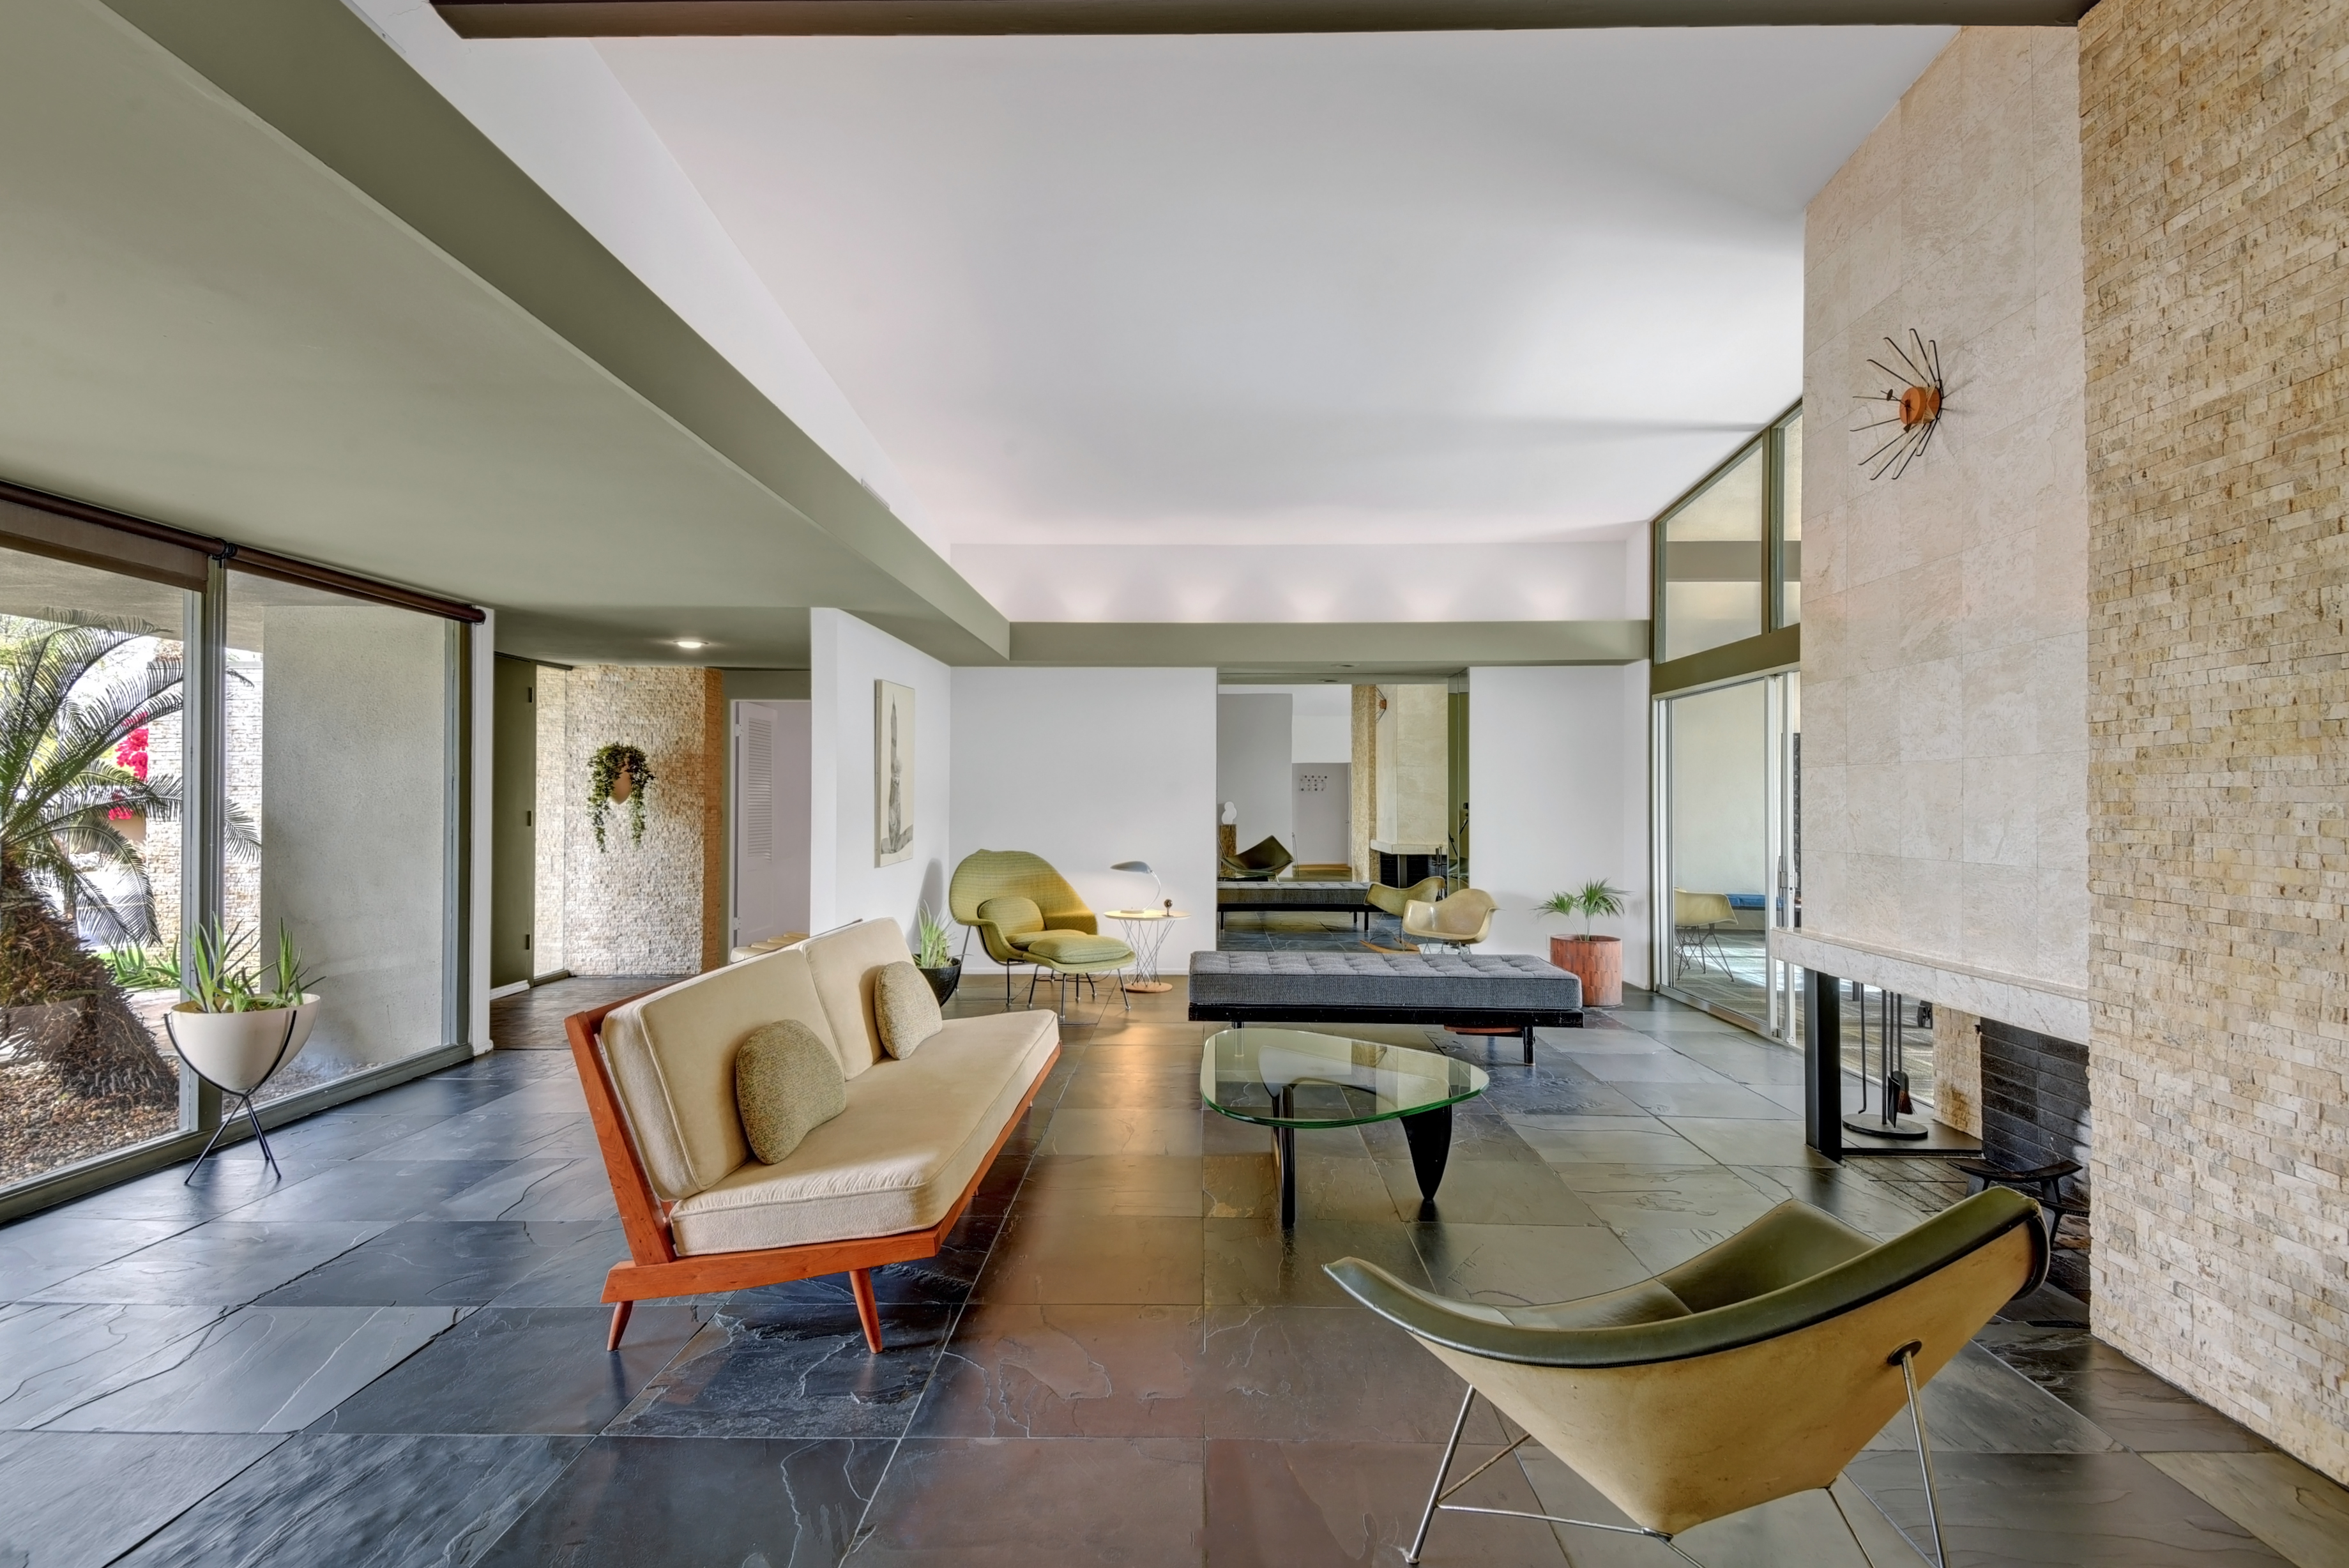 60s modern in palm desert for sale for 1 5m curbed la